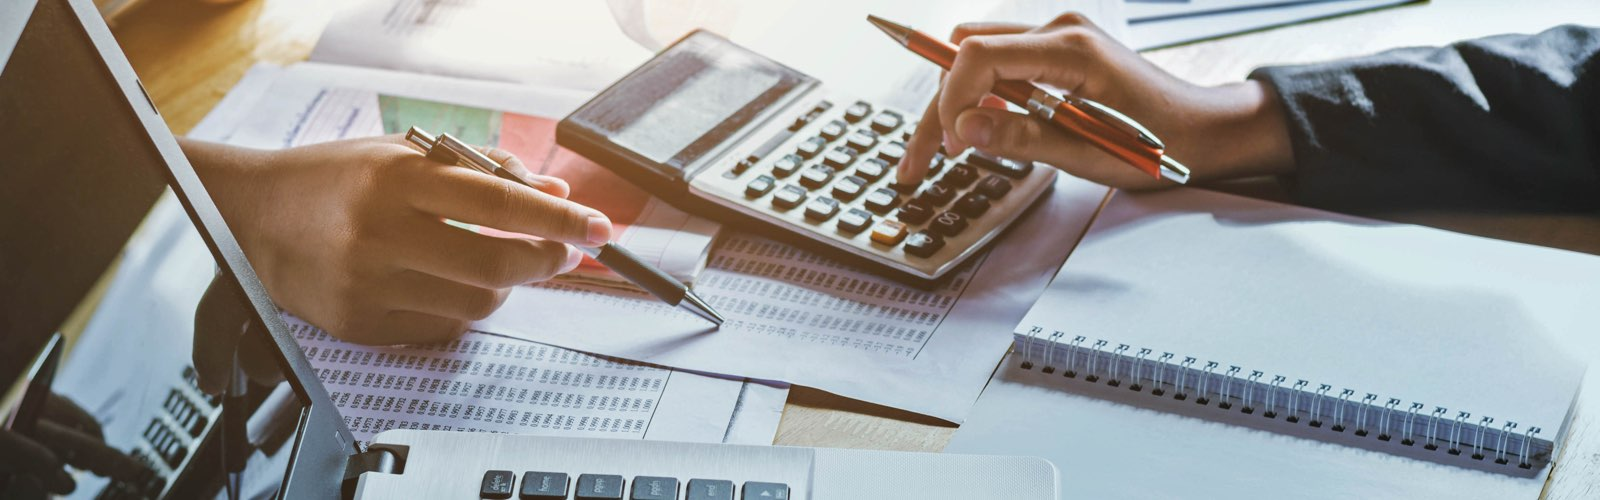 Accountants adding up figures with a calculator on desk